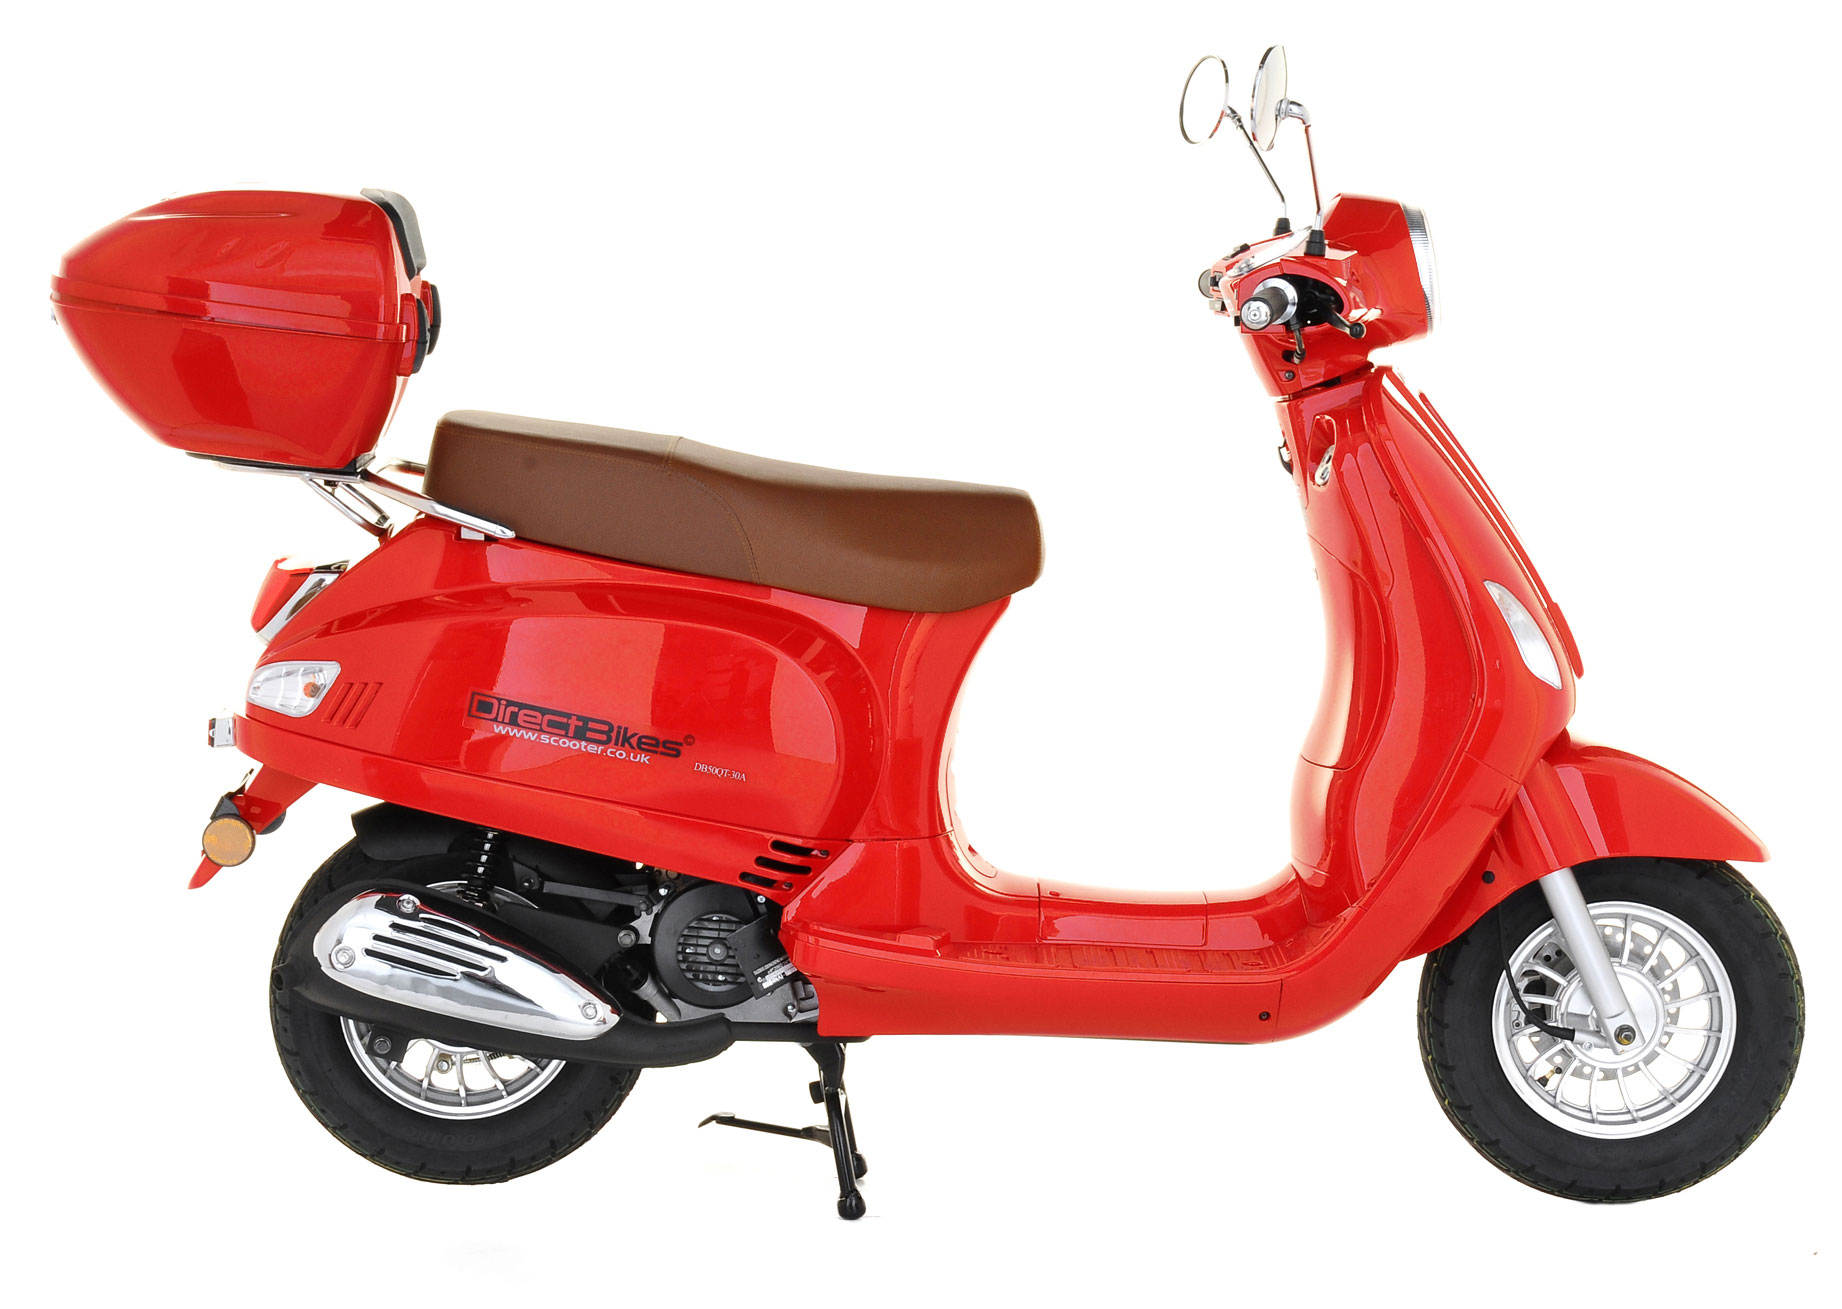 50cc scooter buy direct bikes milan 50cc scooters red. Black Bedroom Furniture Sets. Home Design Ideas